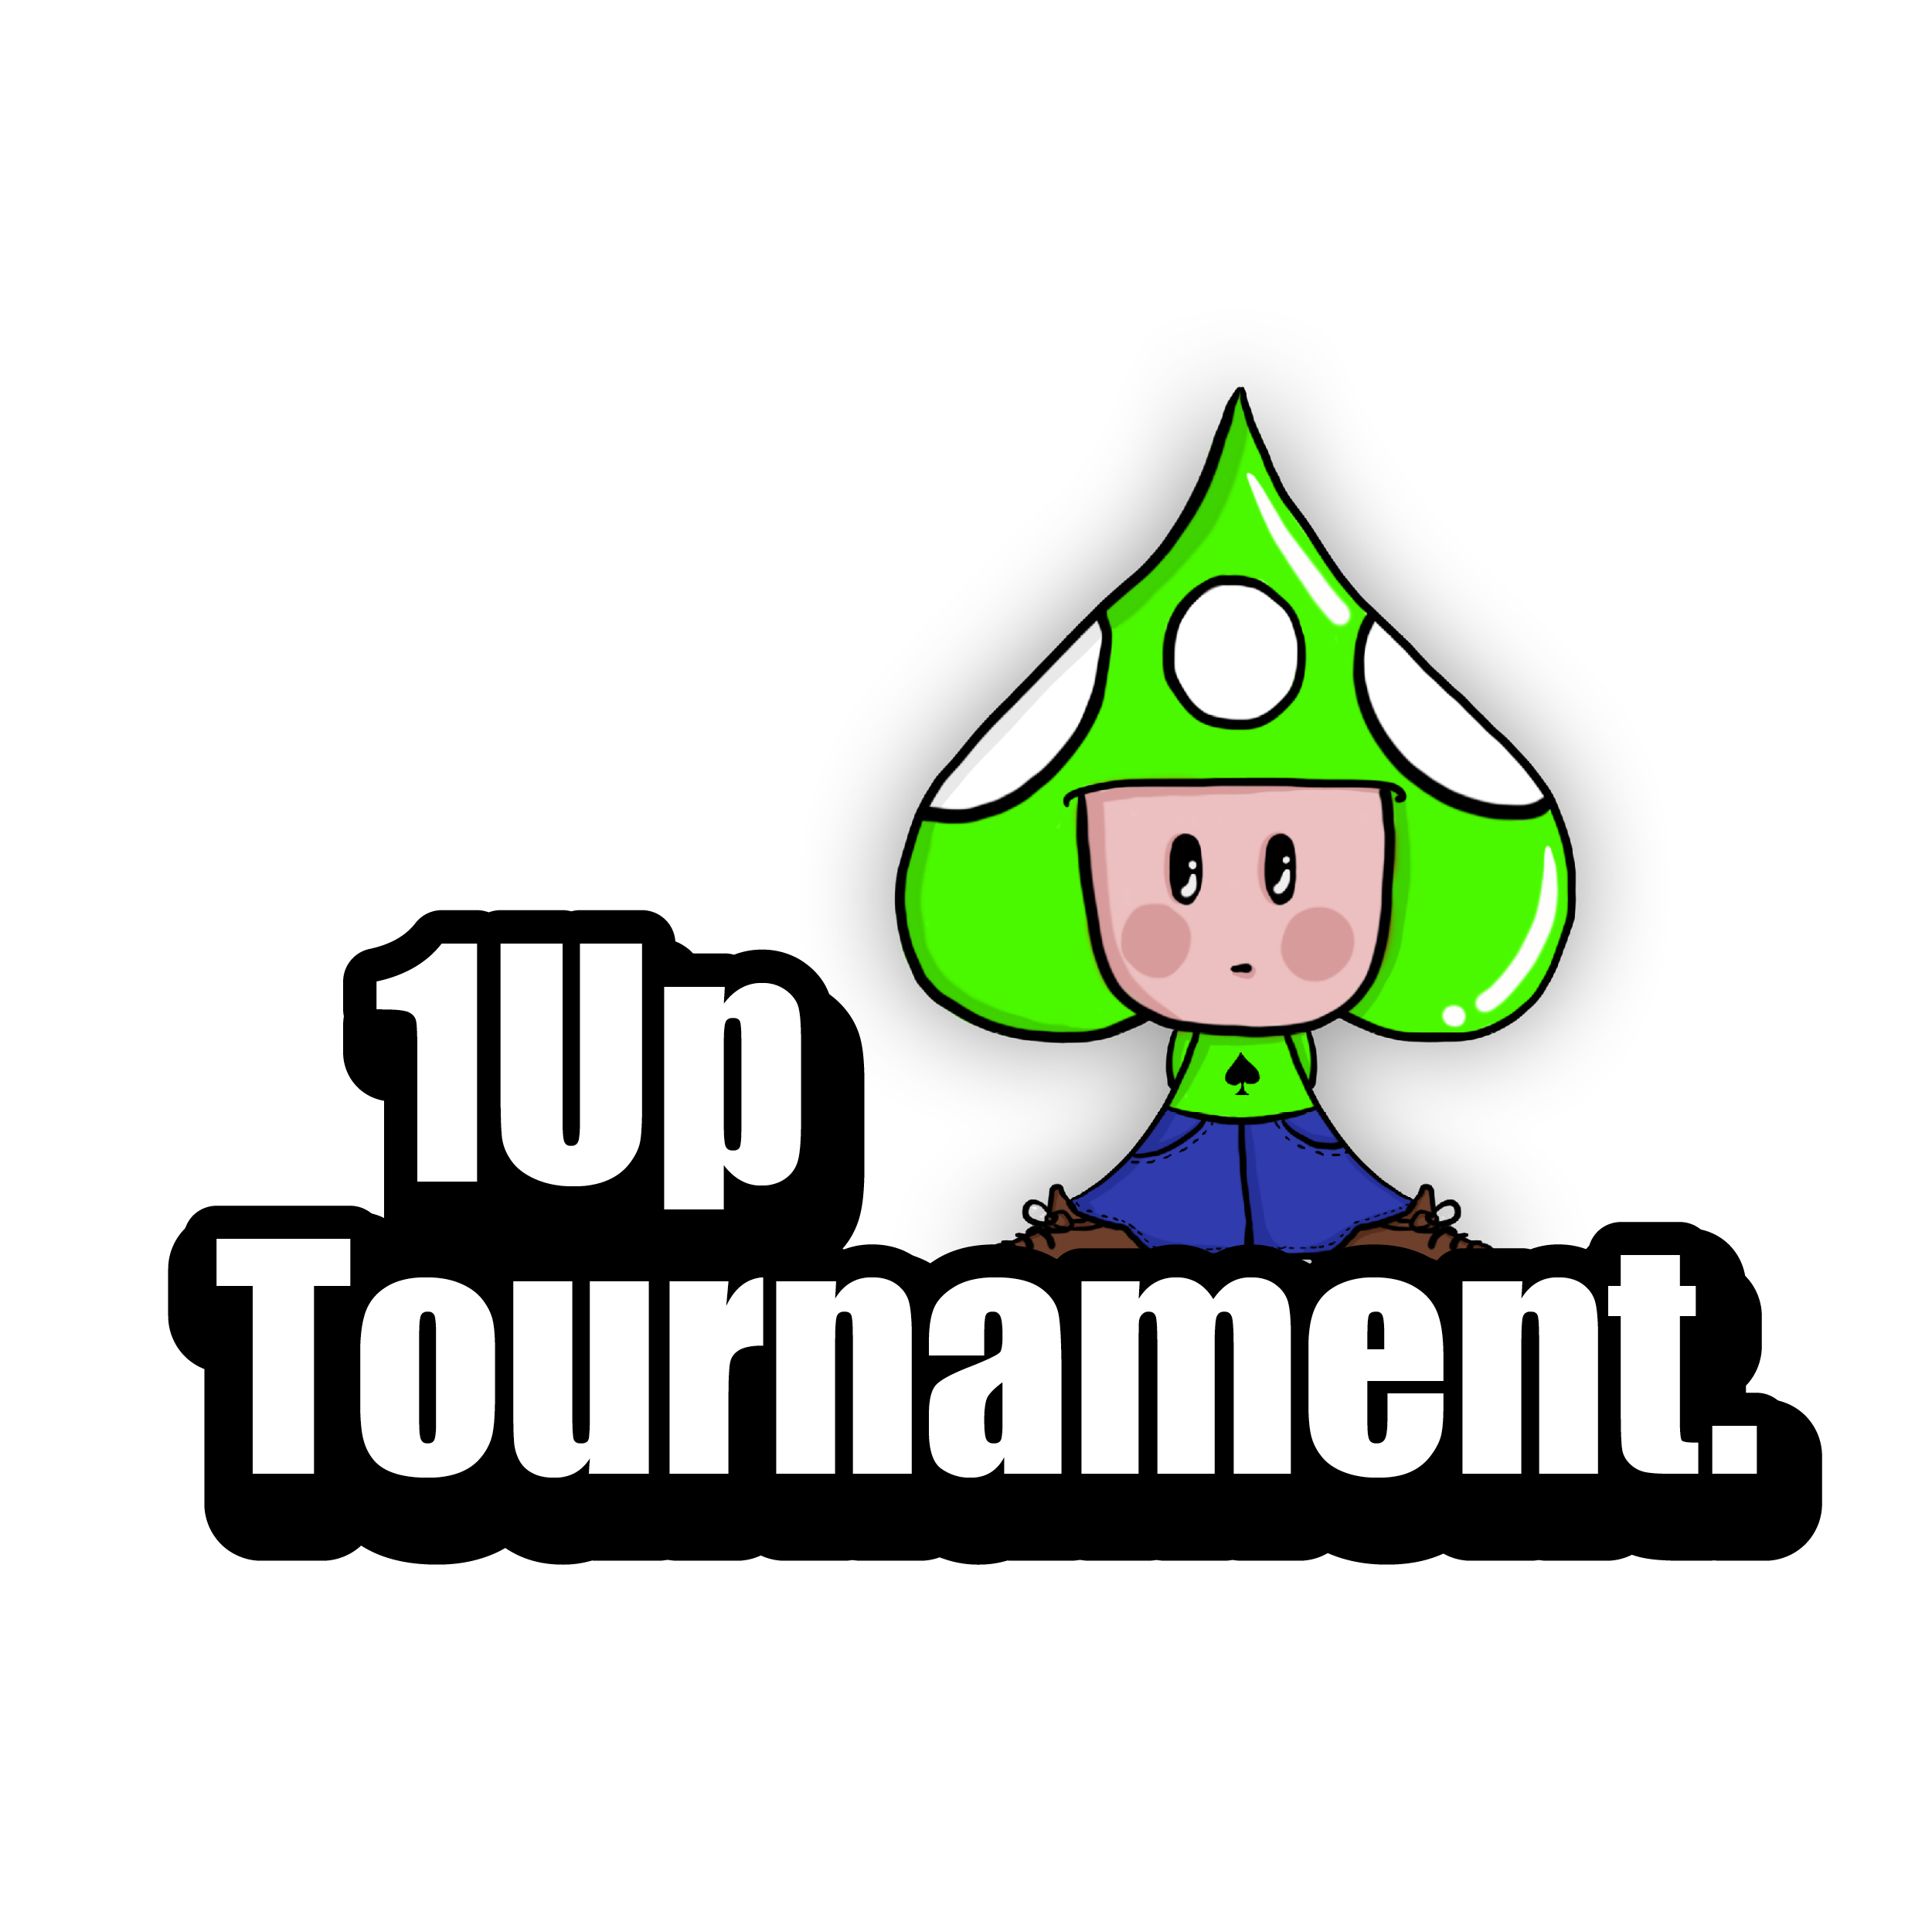 1UP Tournament